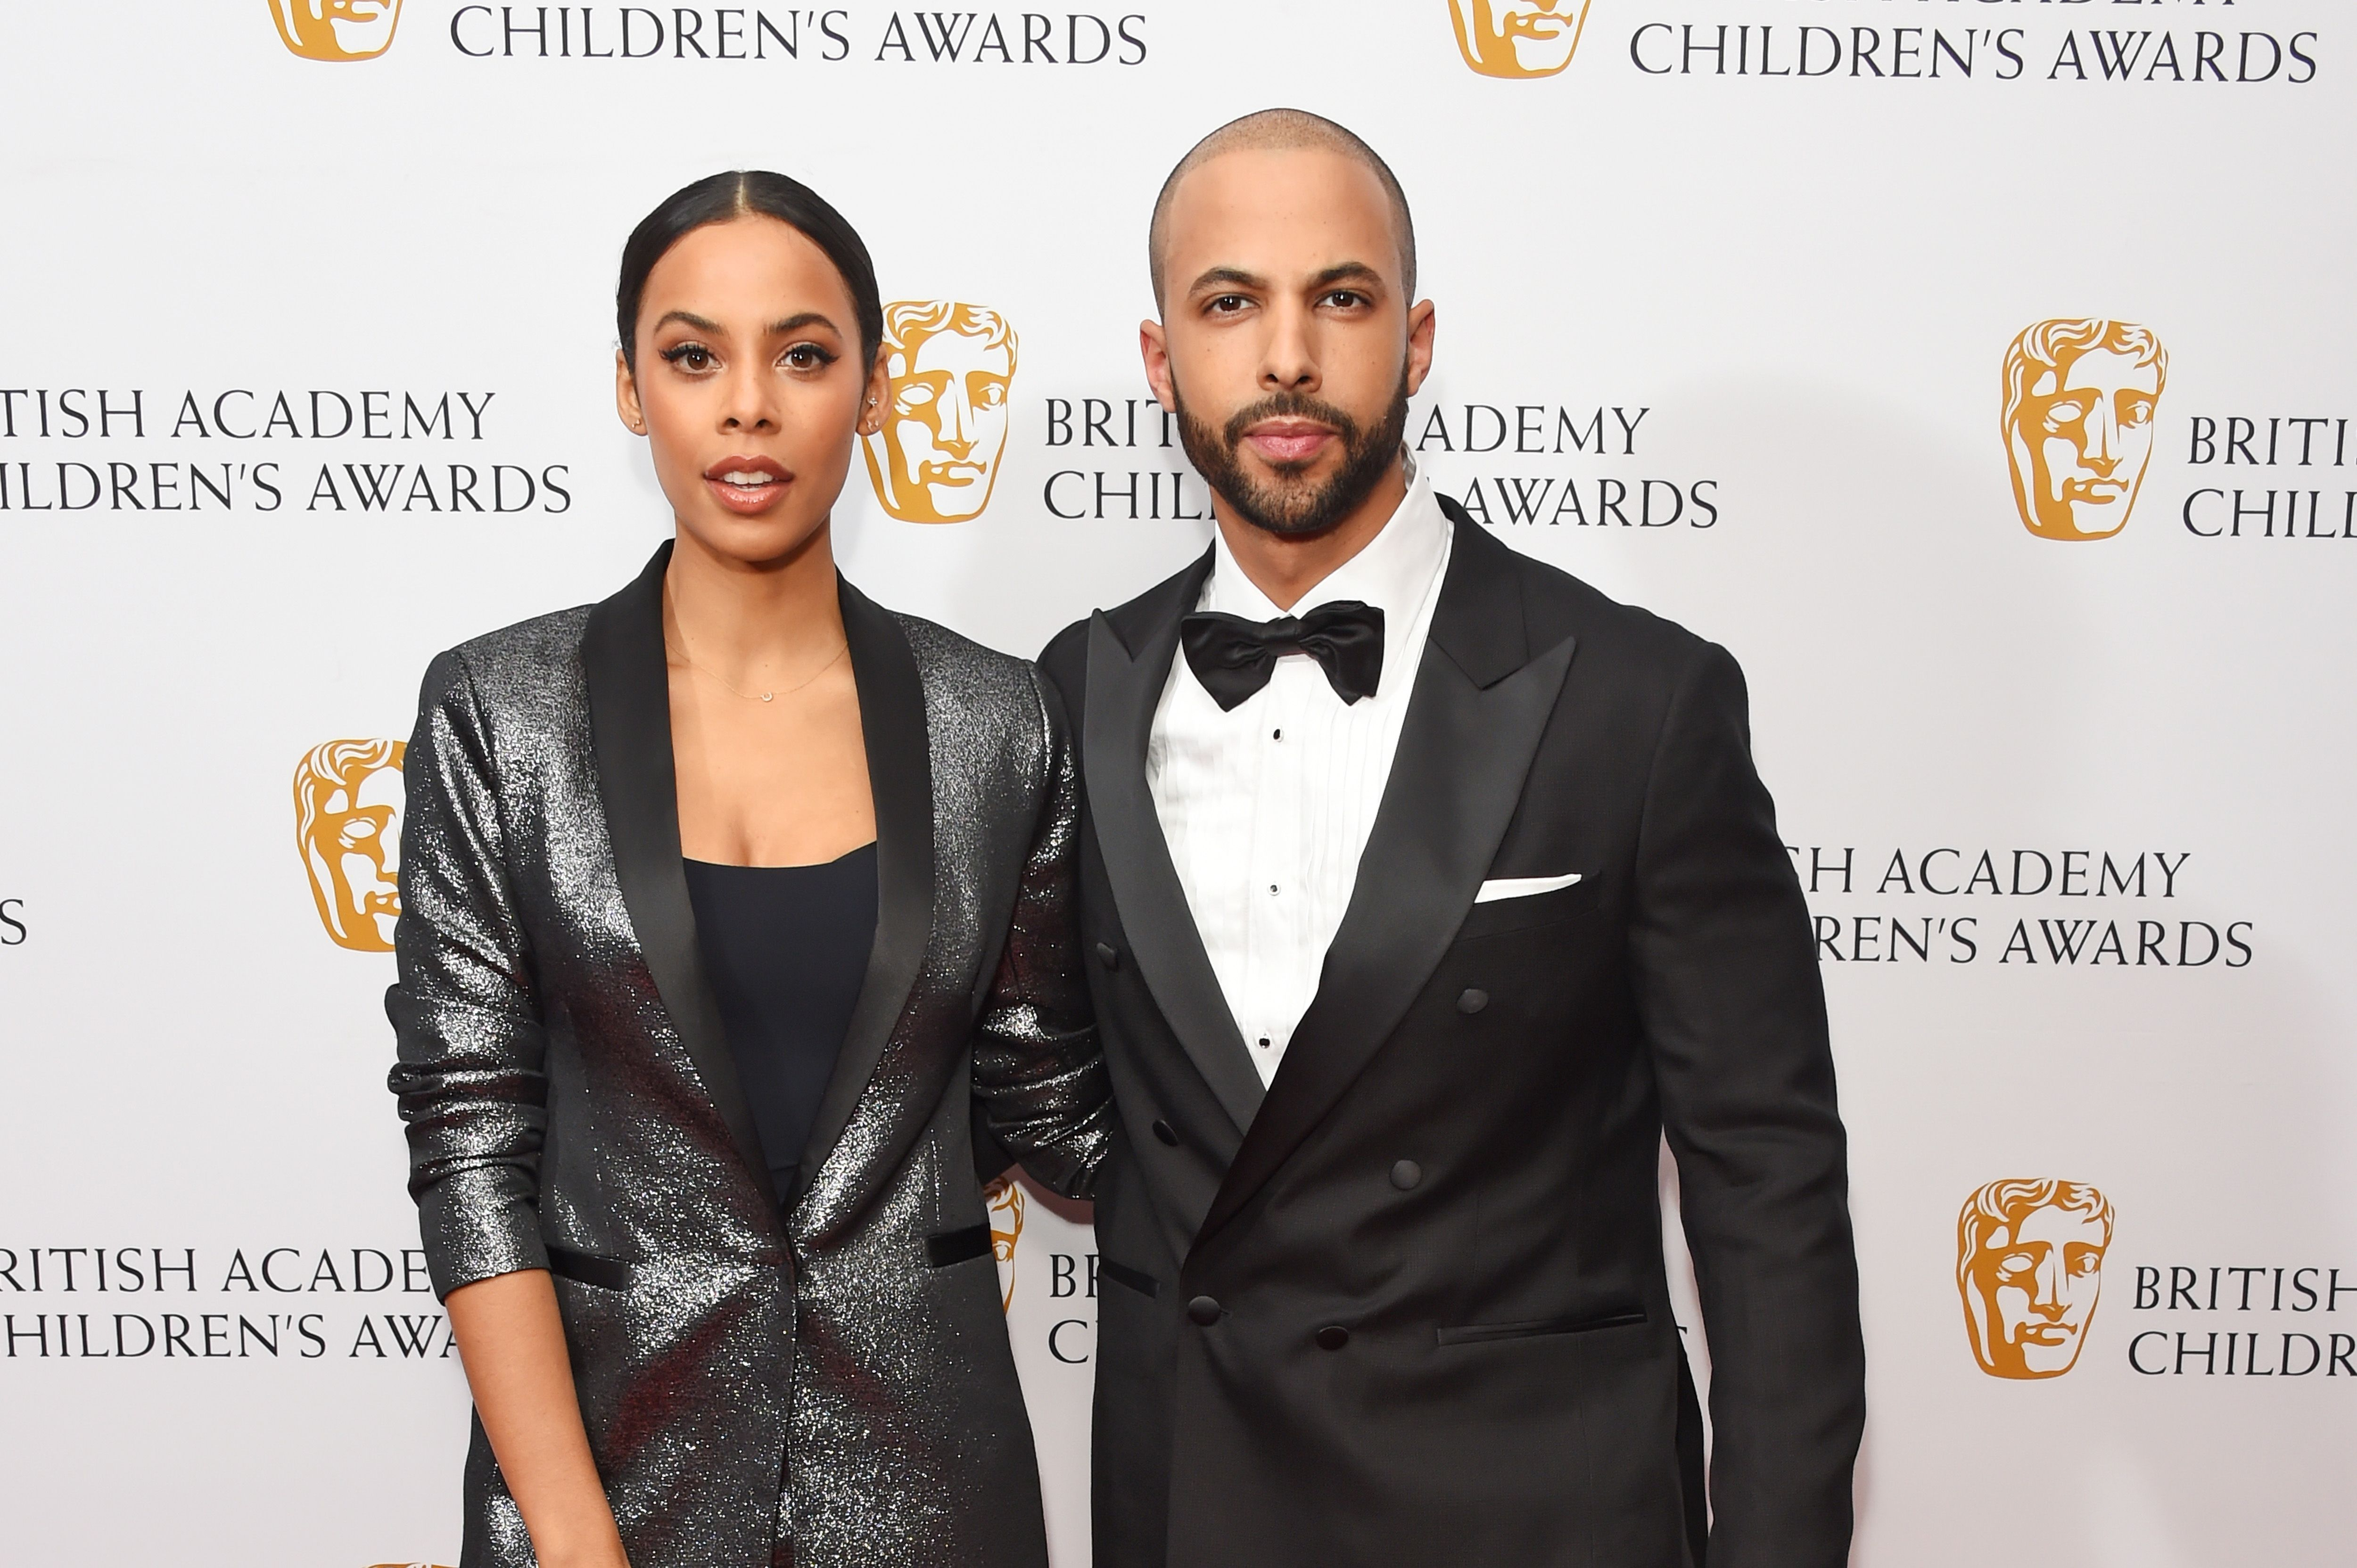 Rochelle Humes Sparkly New Look Suit Is The Perfect Party Dress Alternative